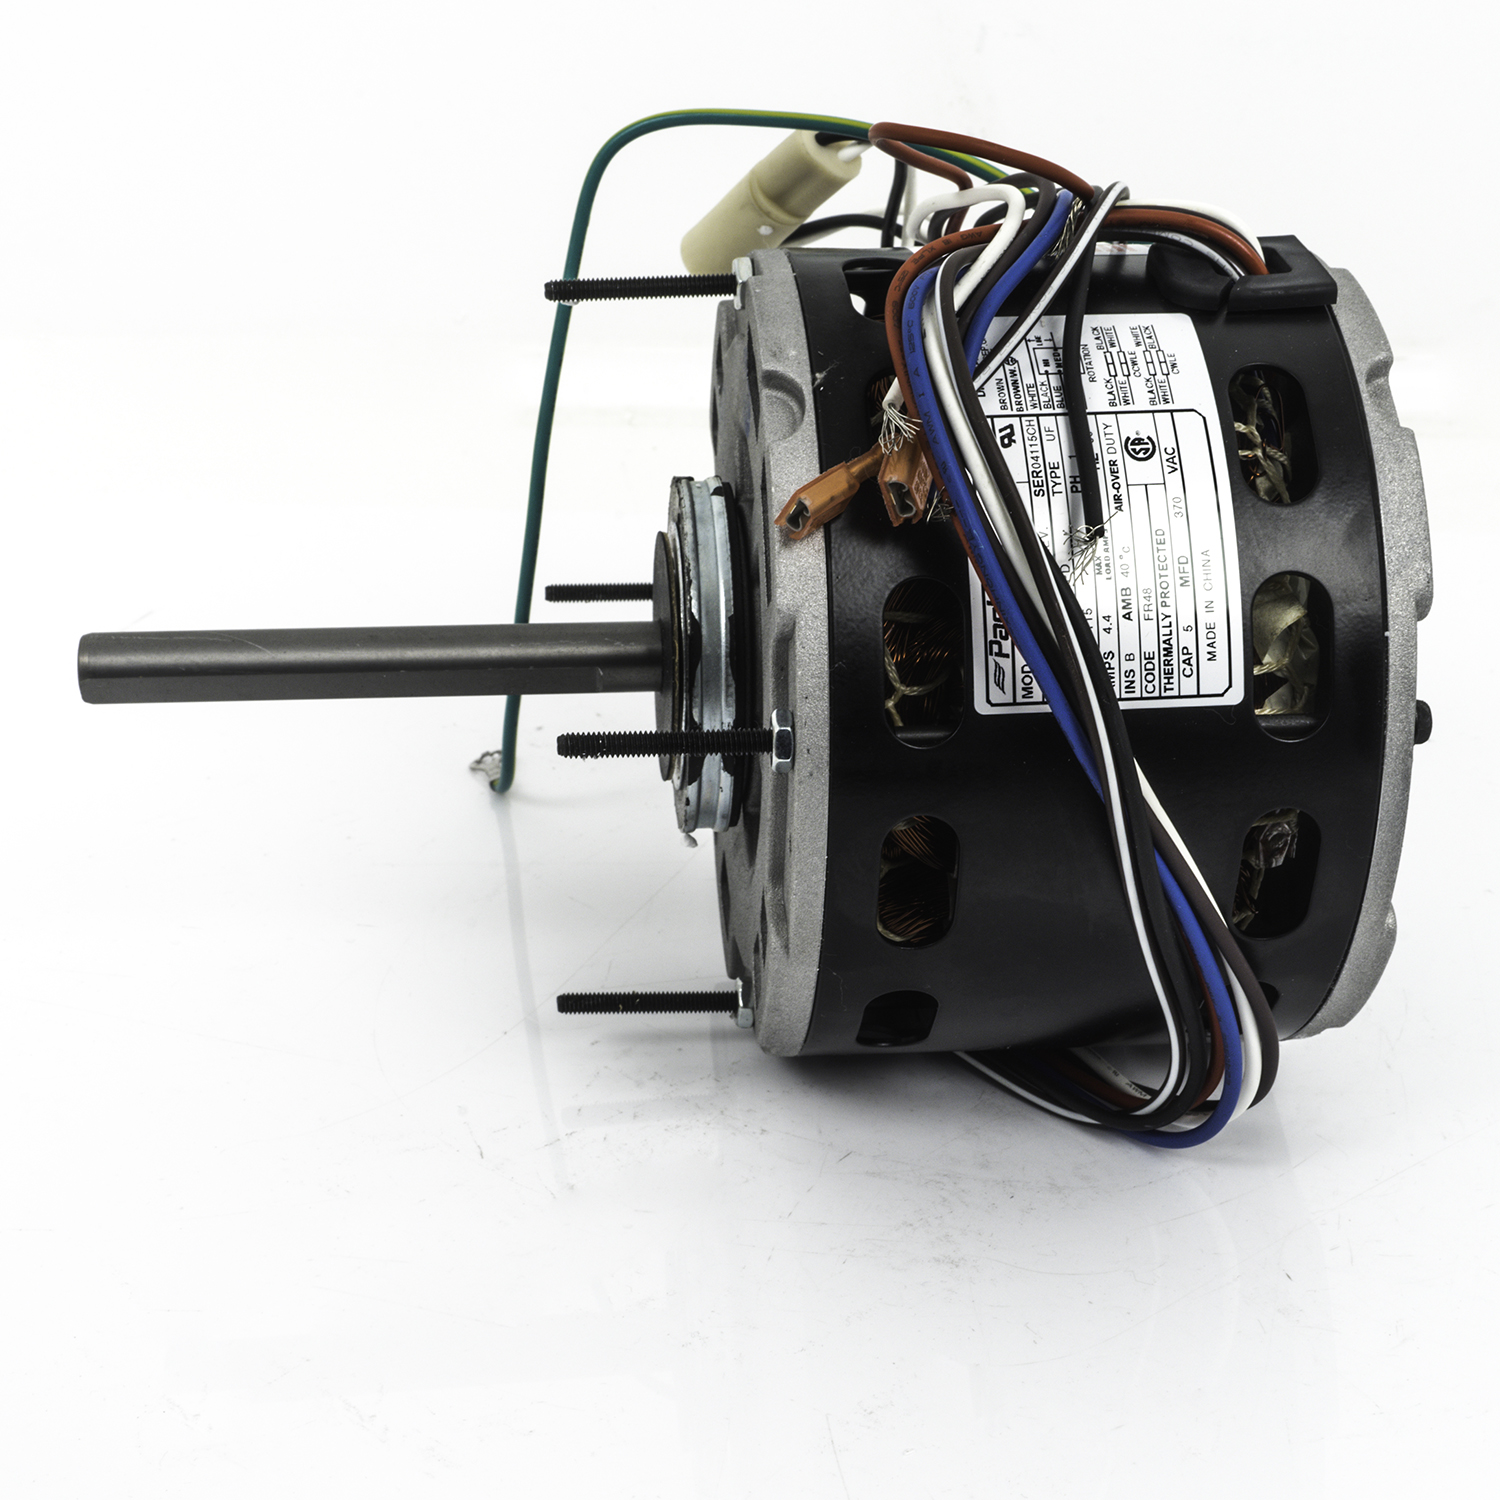 48 Frame Direct Drive Blower Motor, 1/2 HP, 208-230 Volts ... on